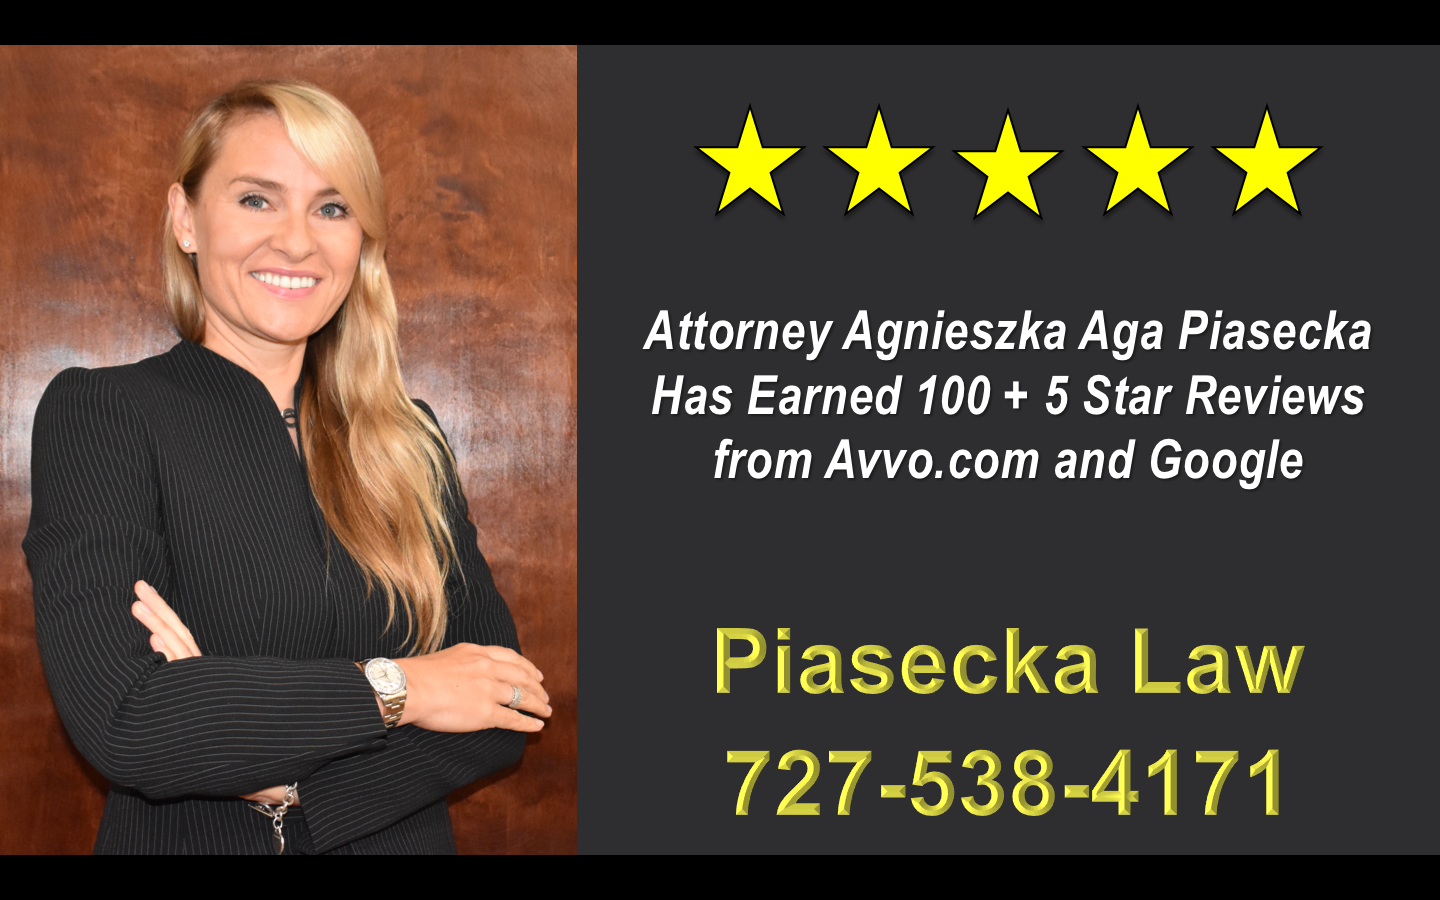 Wills, Trusts, Clearwater, Florida, Lawyer, Attorney, Agnieszka, Aga, Piasecka, Reviews